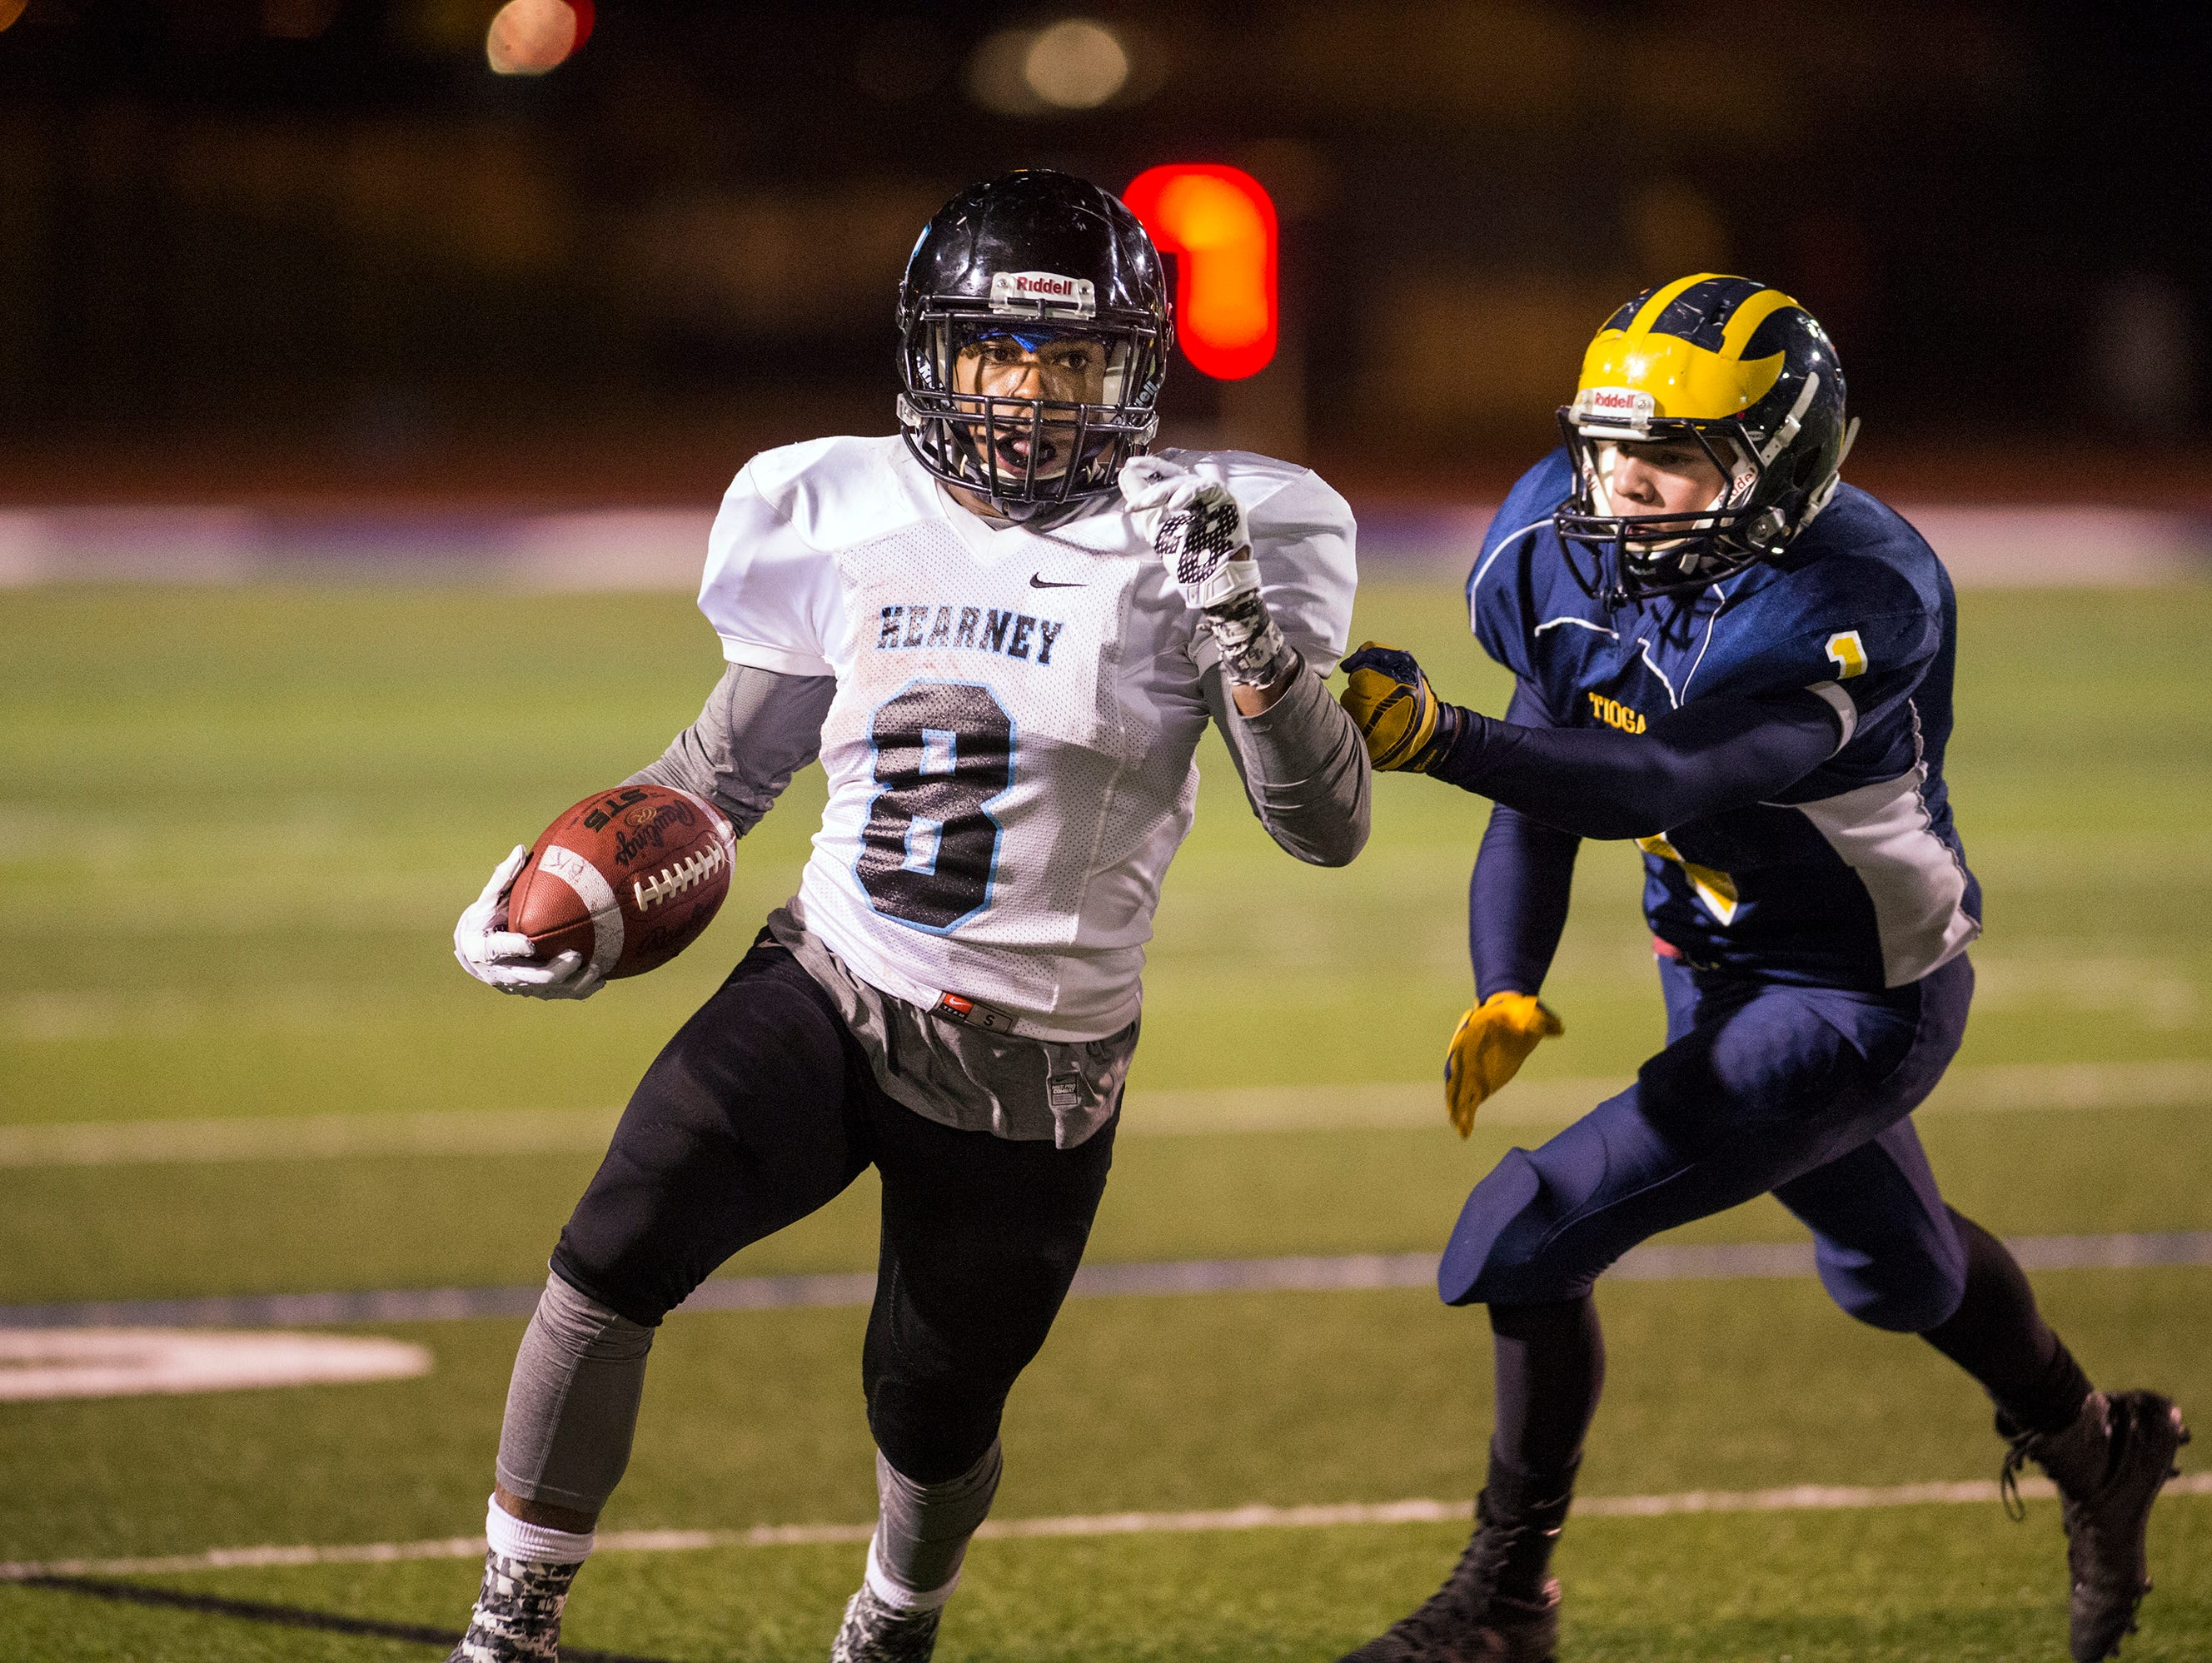 Bishop Kearney running back Dahmir Pross rushes the ball during the fourth quarter against Tioga in the Class D state playoff semifinals at Cicero-North in Syracuse on Friday, Nov. 20, 2015.